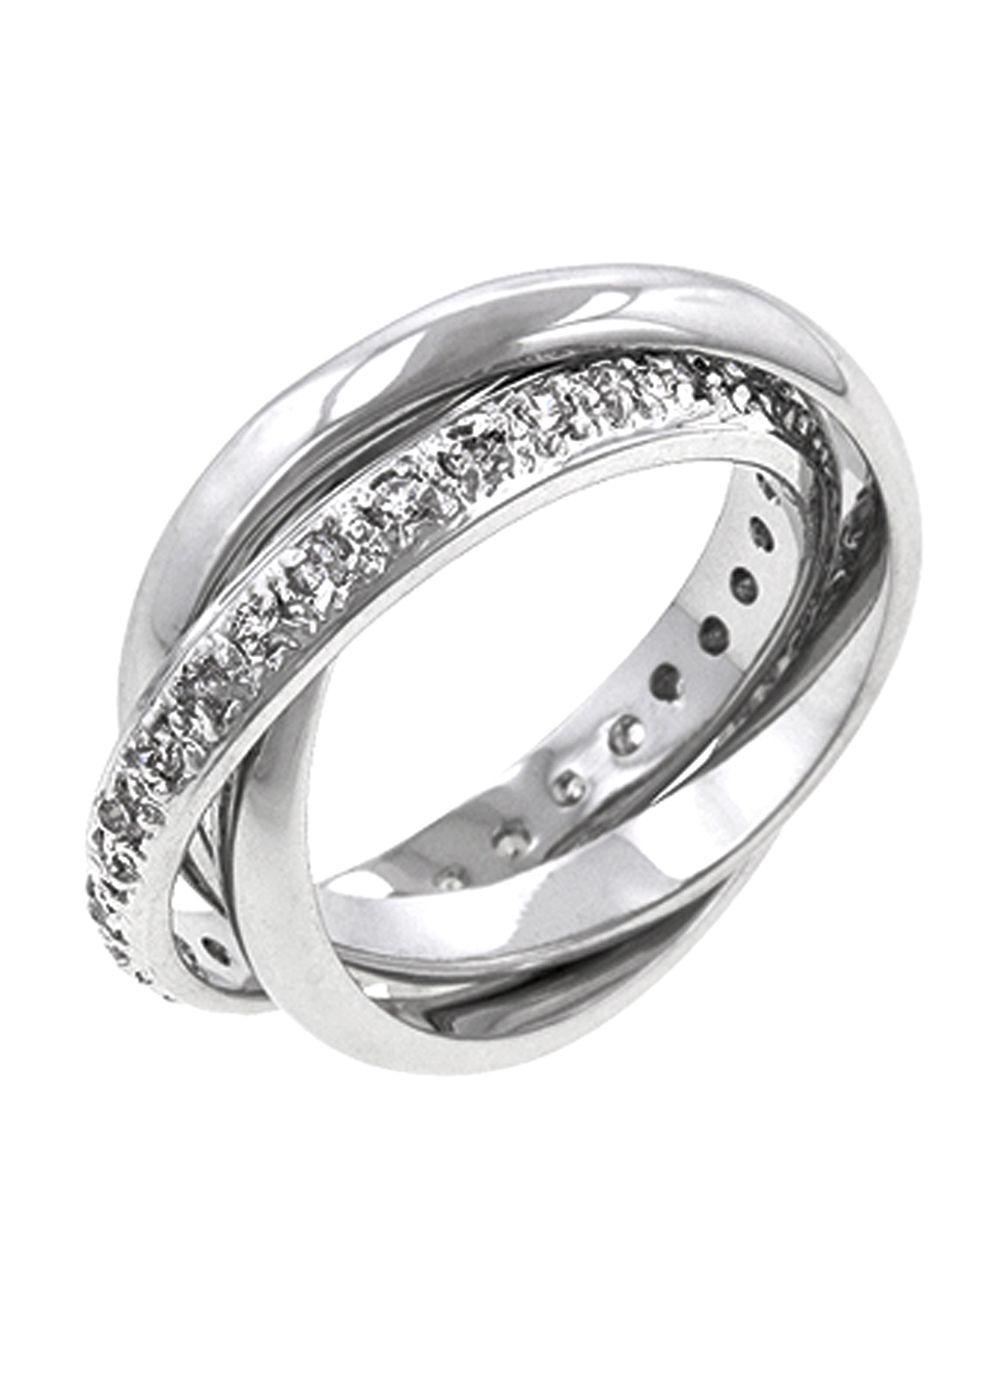 Jewellery White gold bonded interlinking eternity band ring one